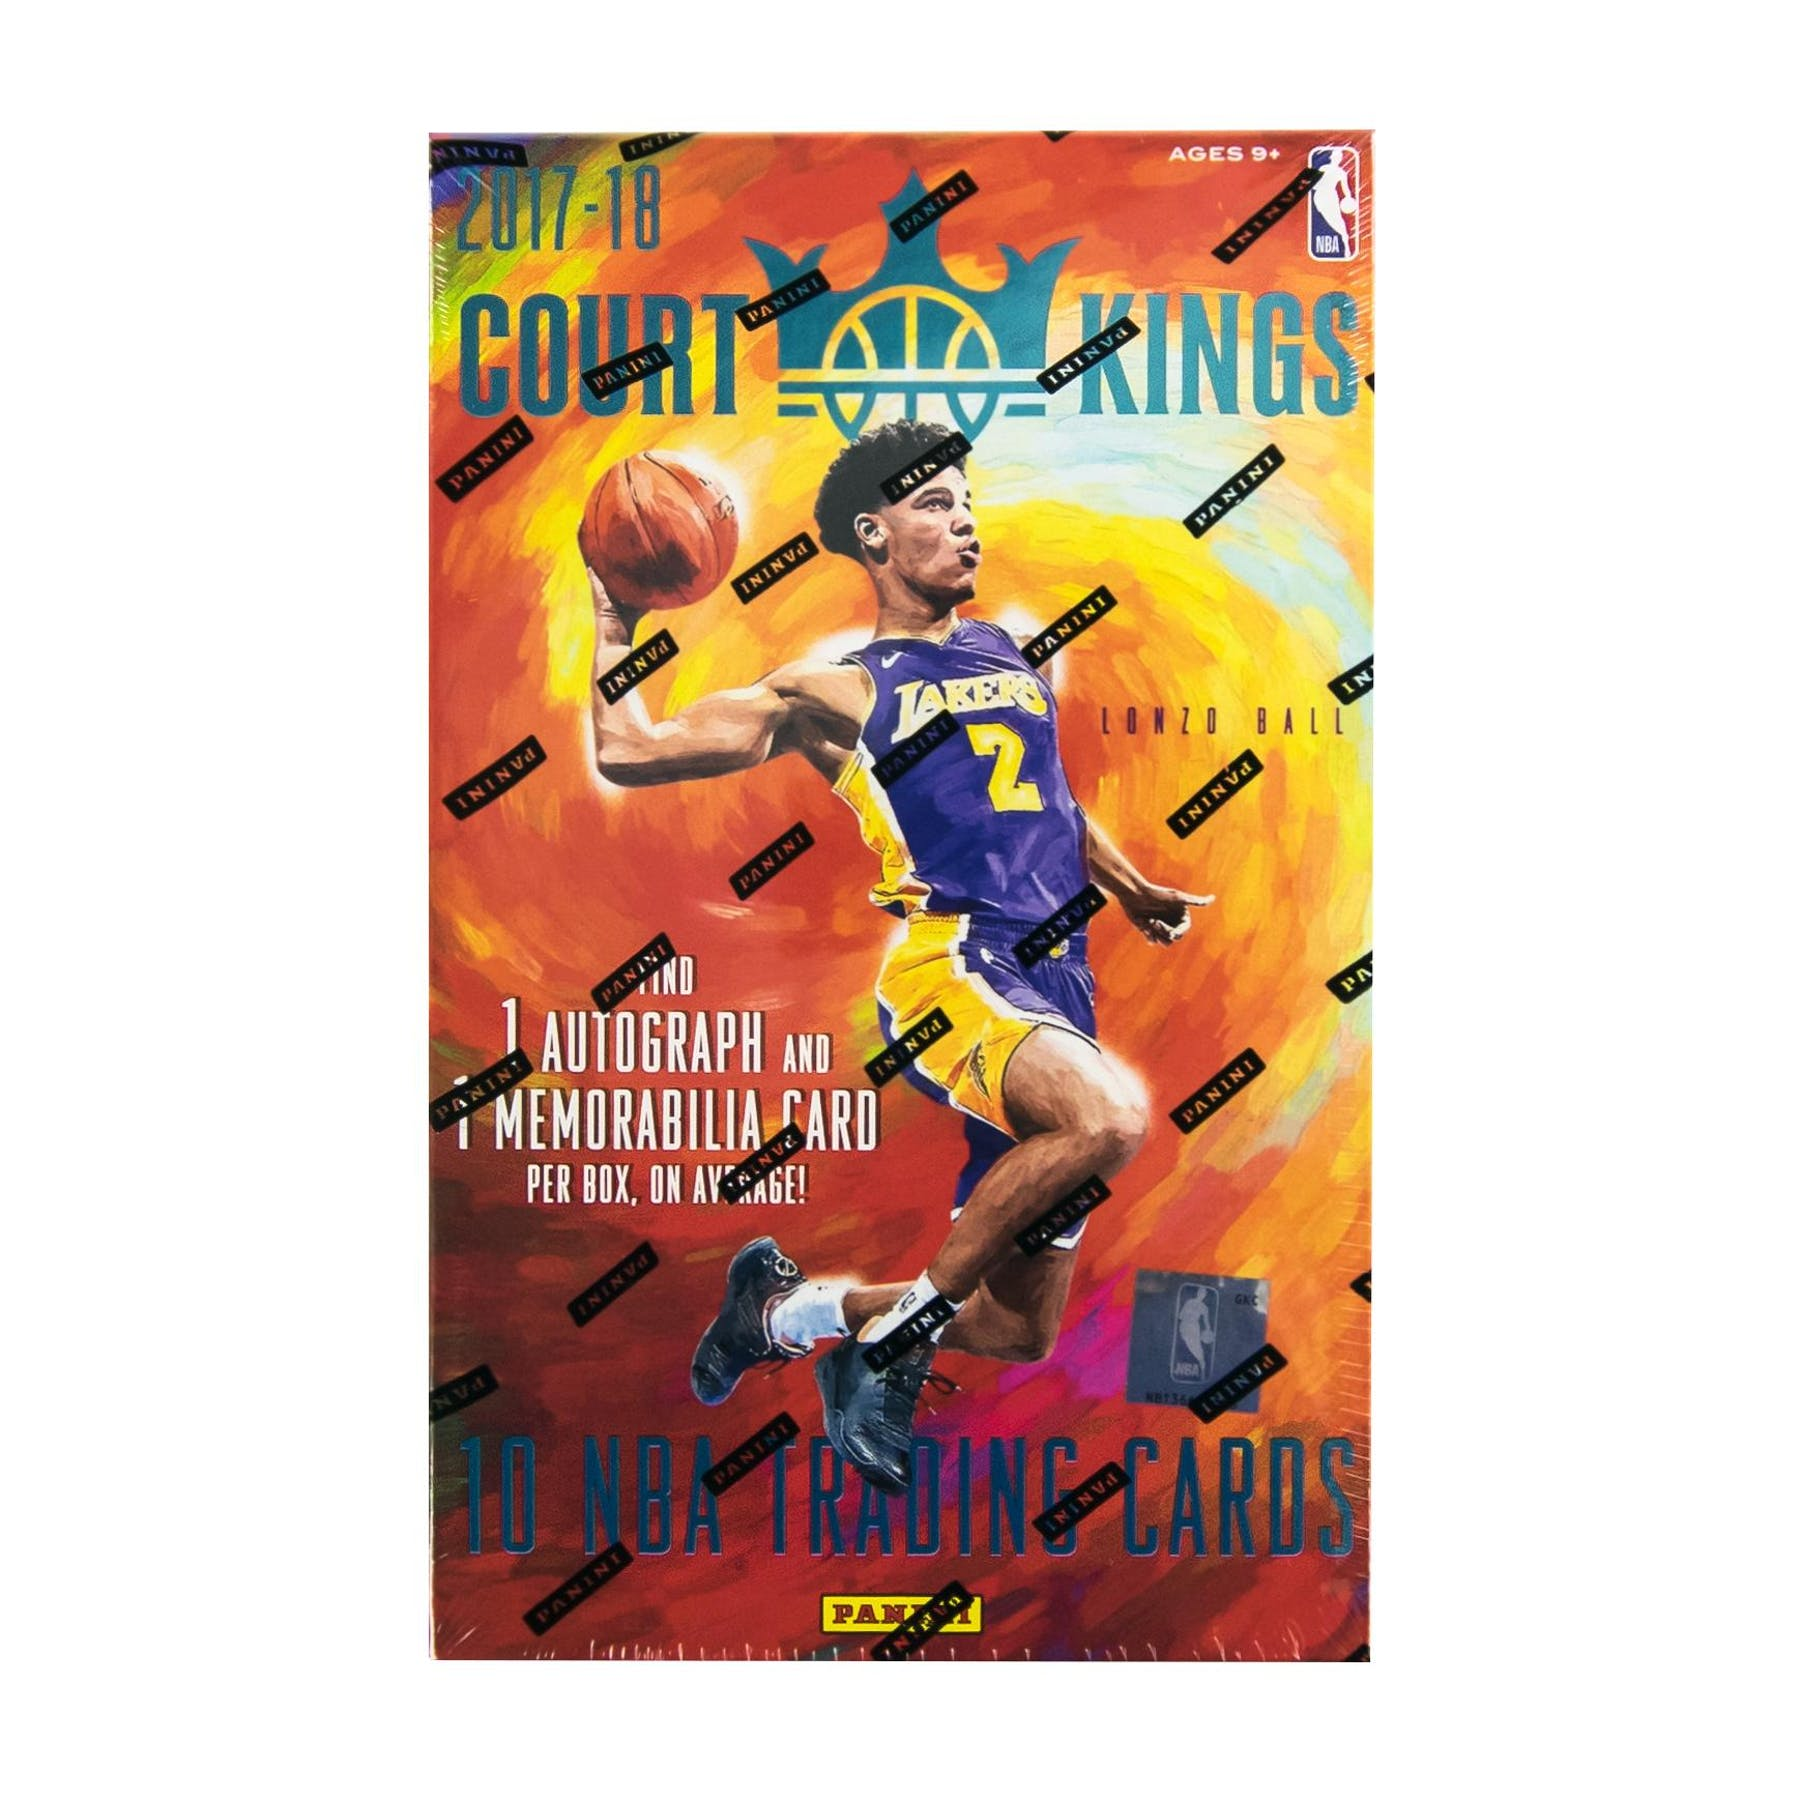 Game boy color online free - 2017 18 Panini Court Kings Basketball Hobby Box